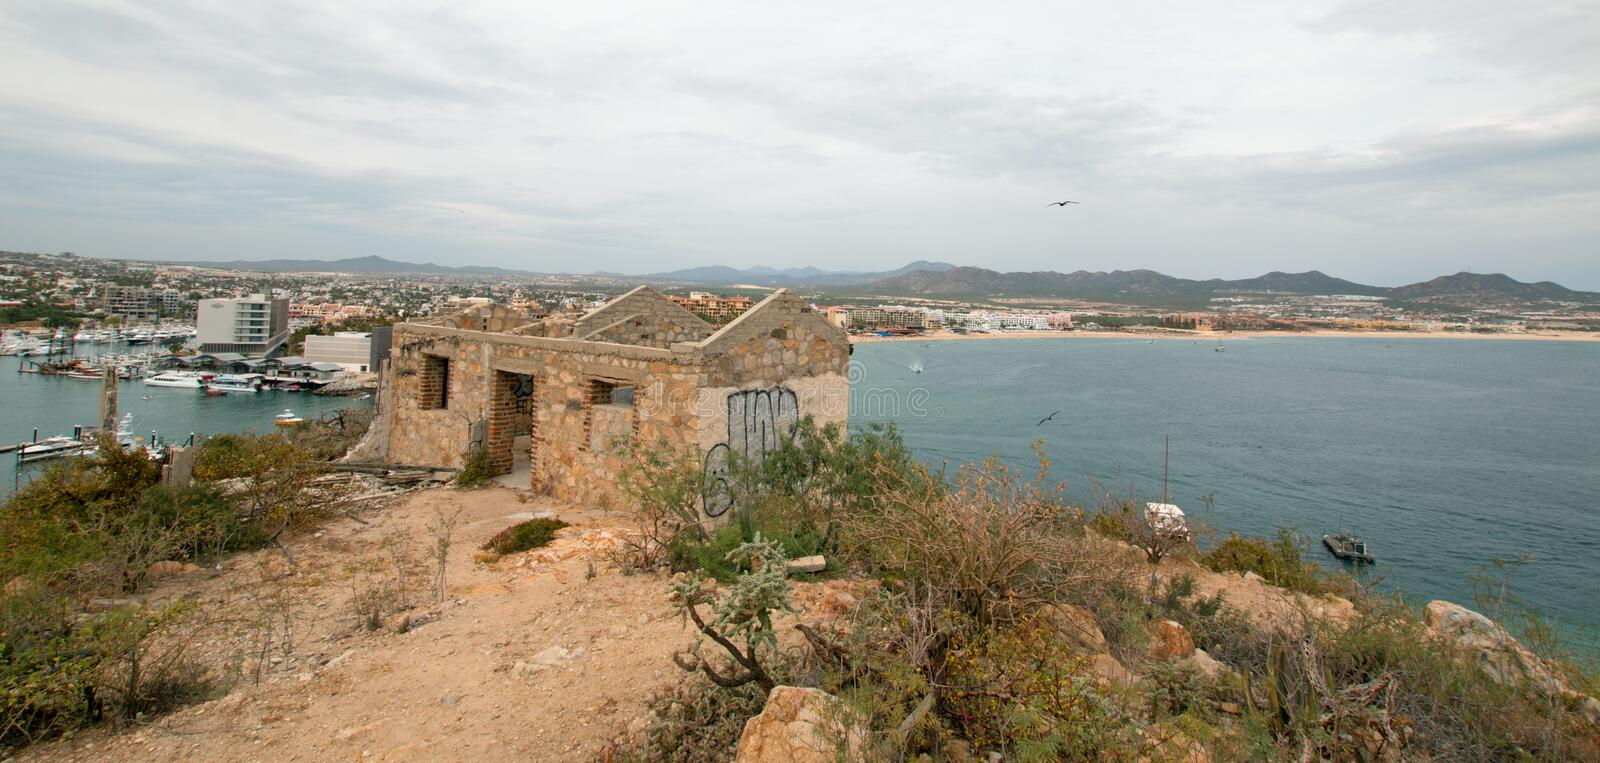 Abandoned brick and stone building on hill above Cabo San Lucas marina and harbor in Baja California Mexico. BCS royalty free stock image